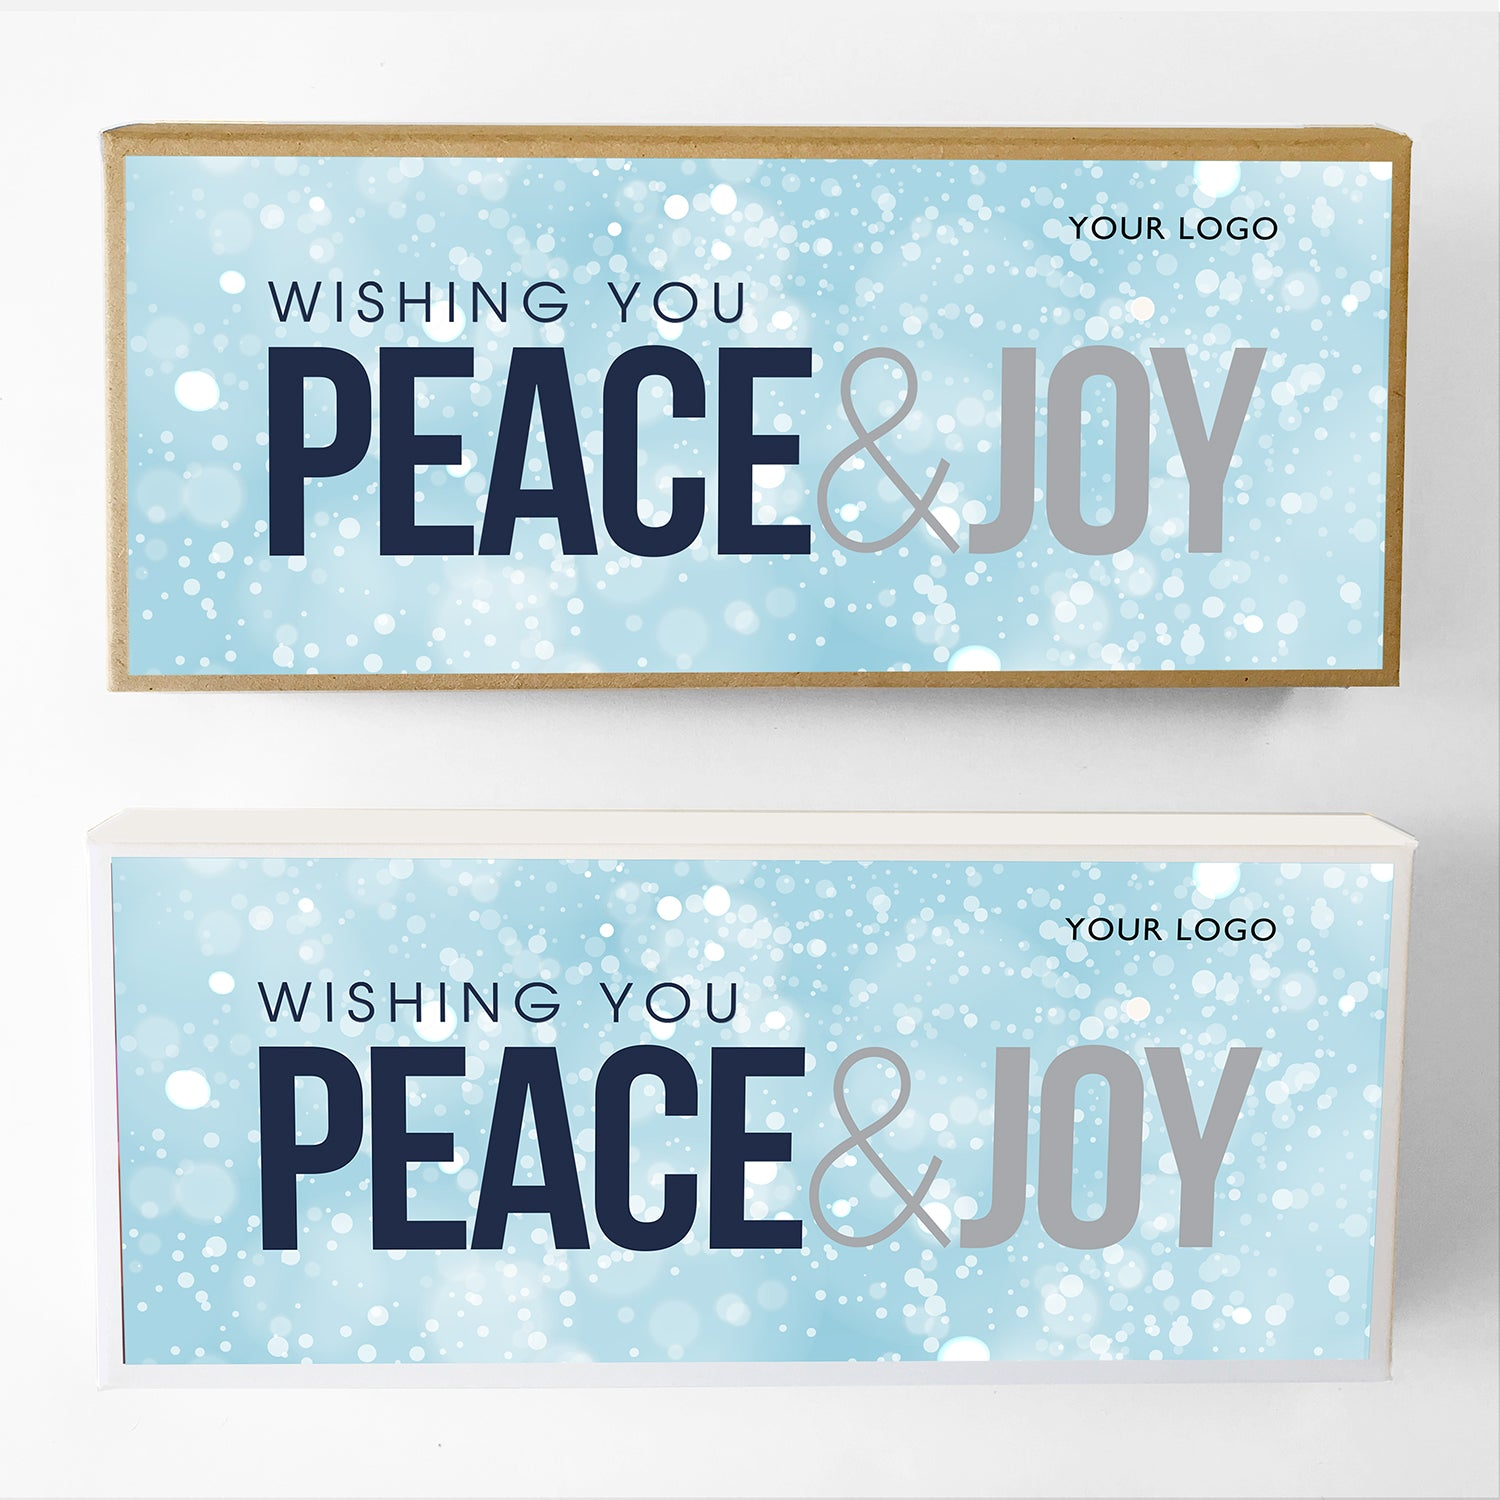 Peace and Joy Custom Caramel Holiday Gift Box Large